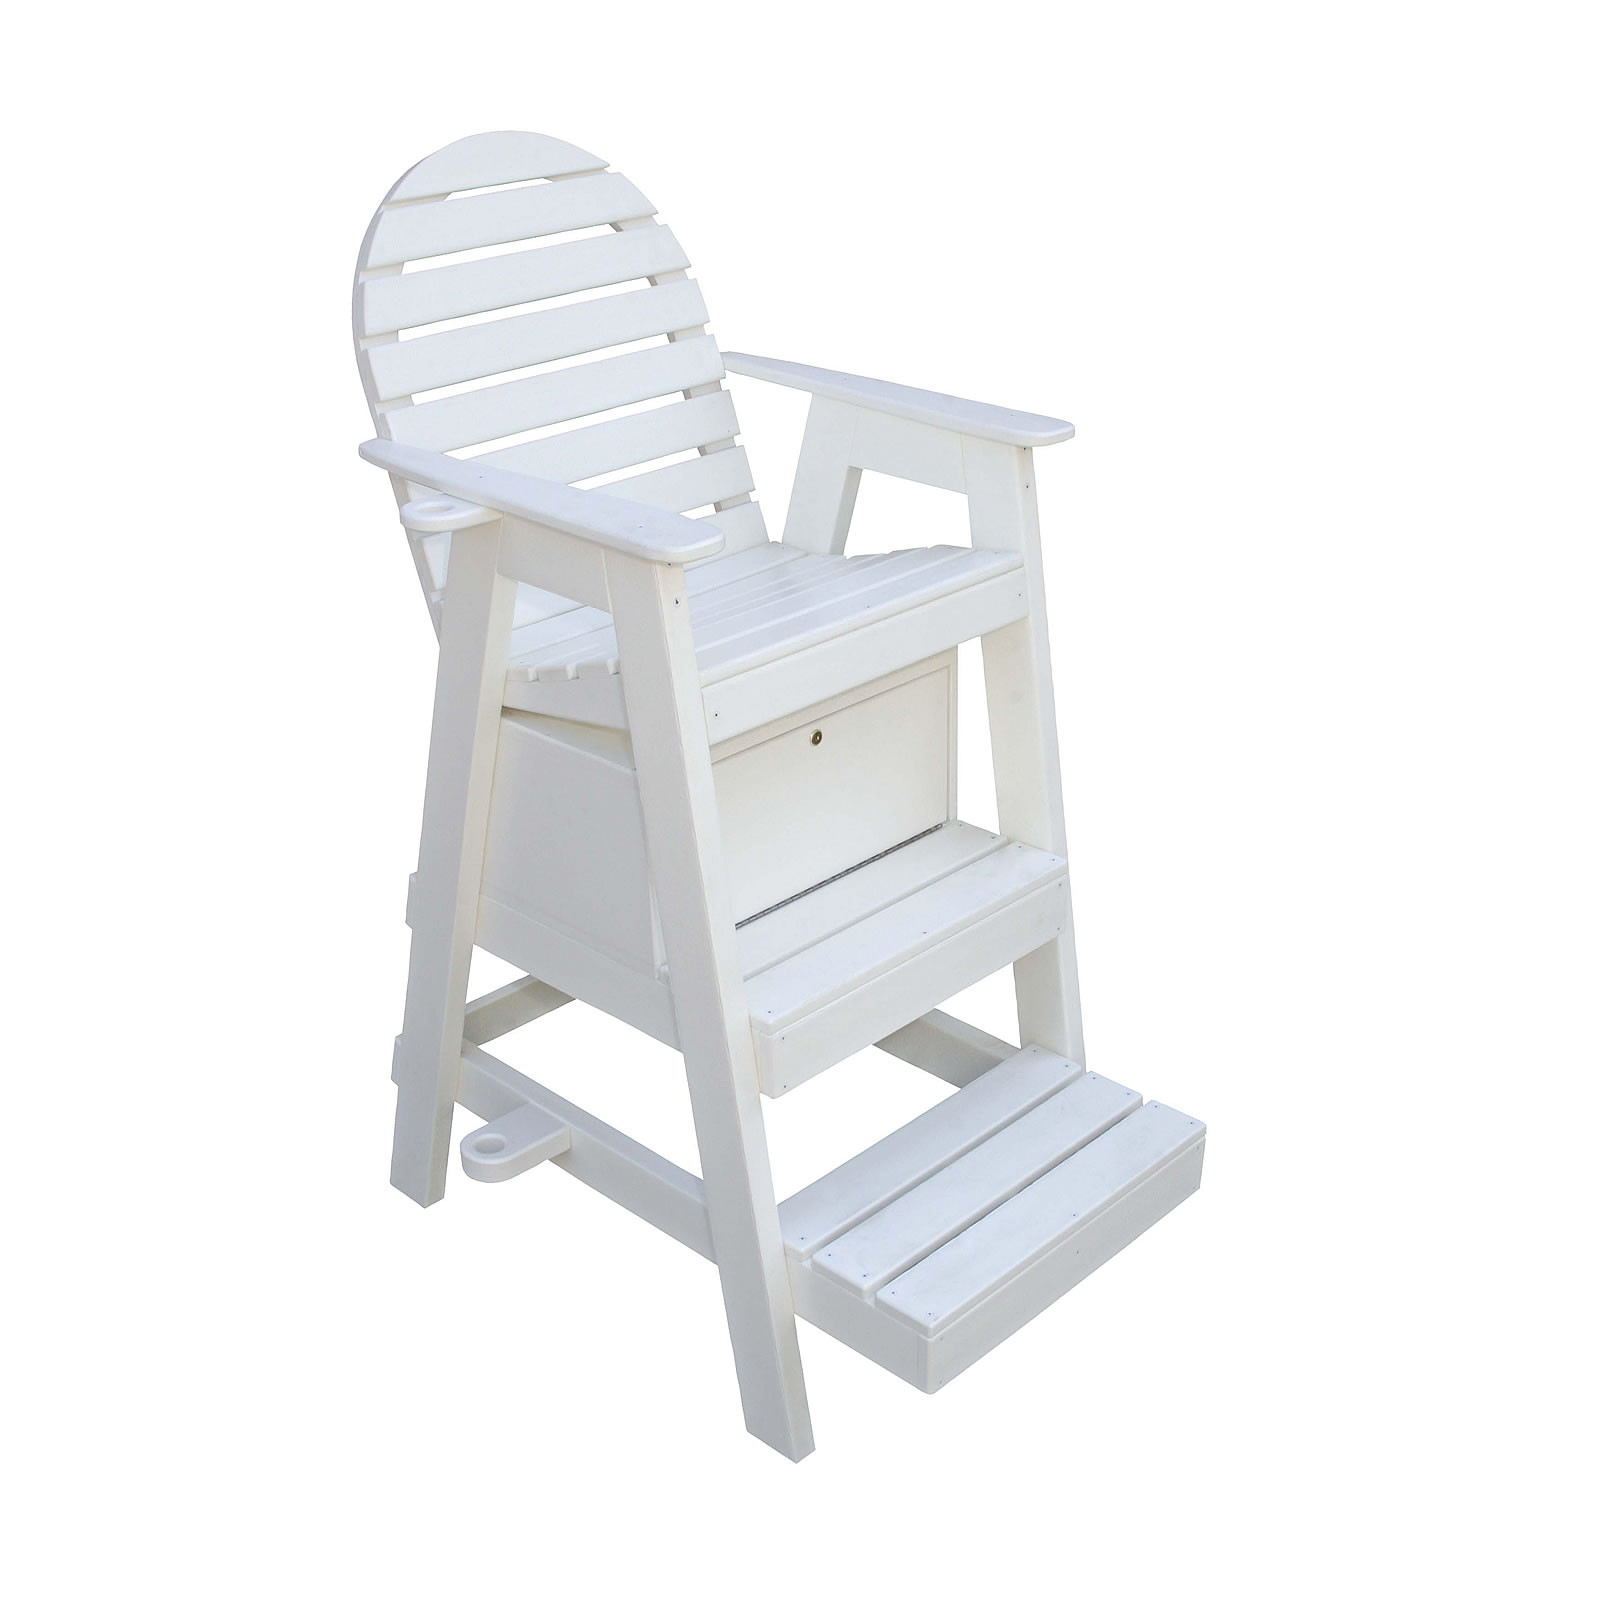 Eagle e Lifeguard Chair Lifeguard Chairs Chairs